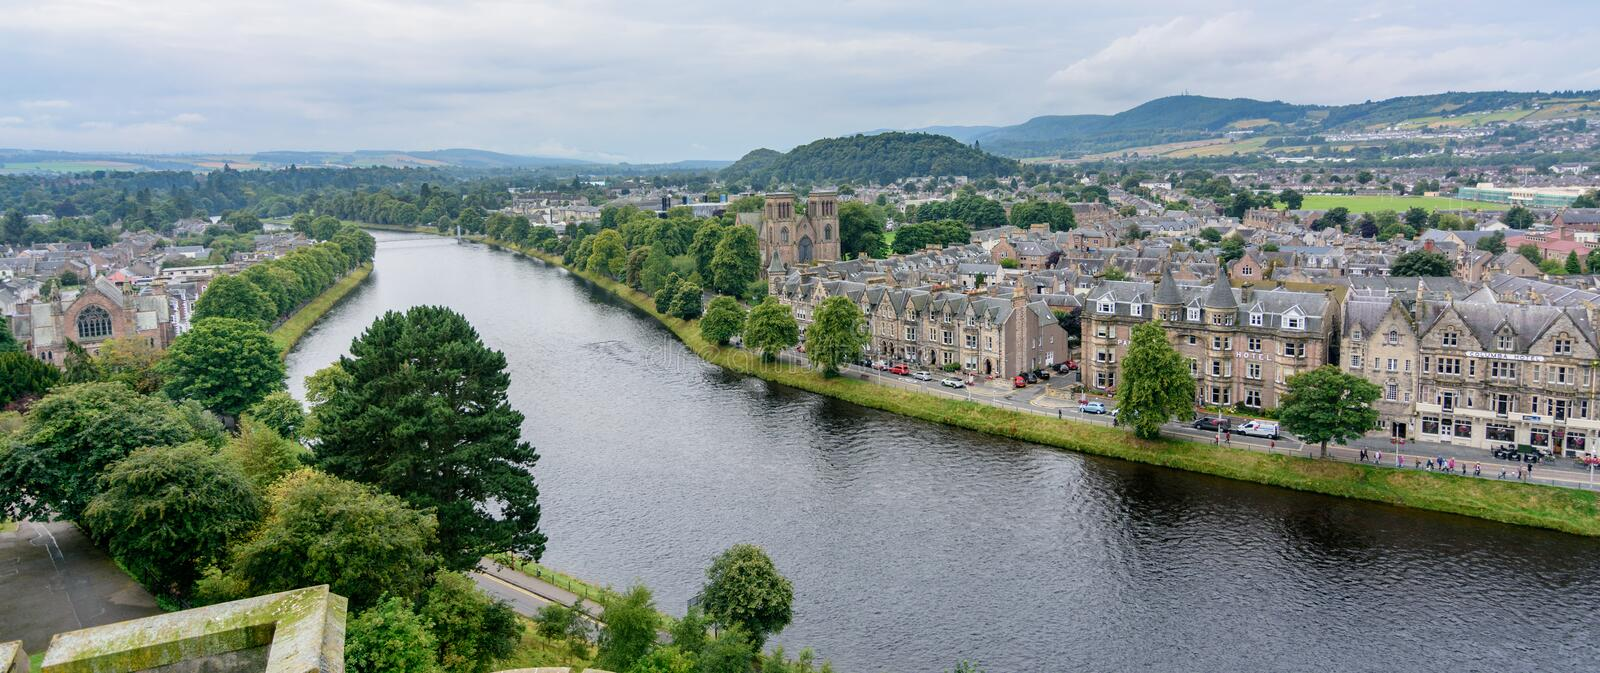 Inverness, Scotland, United Kingdom from above stock photos